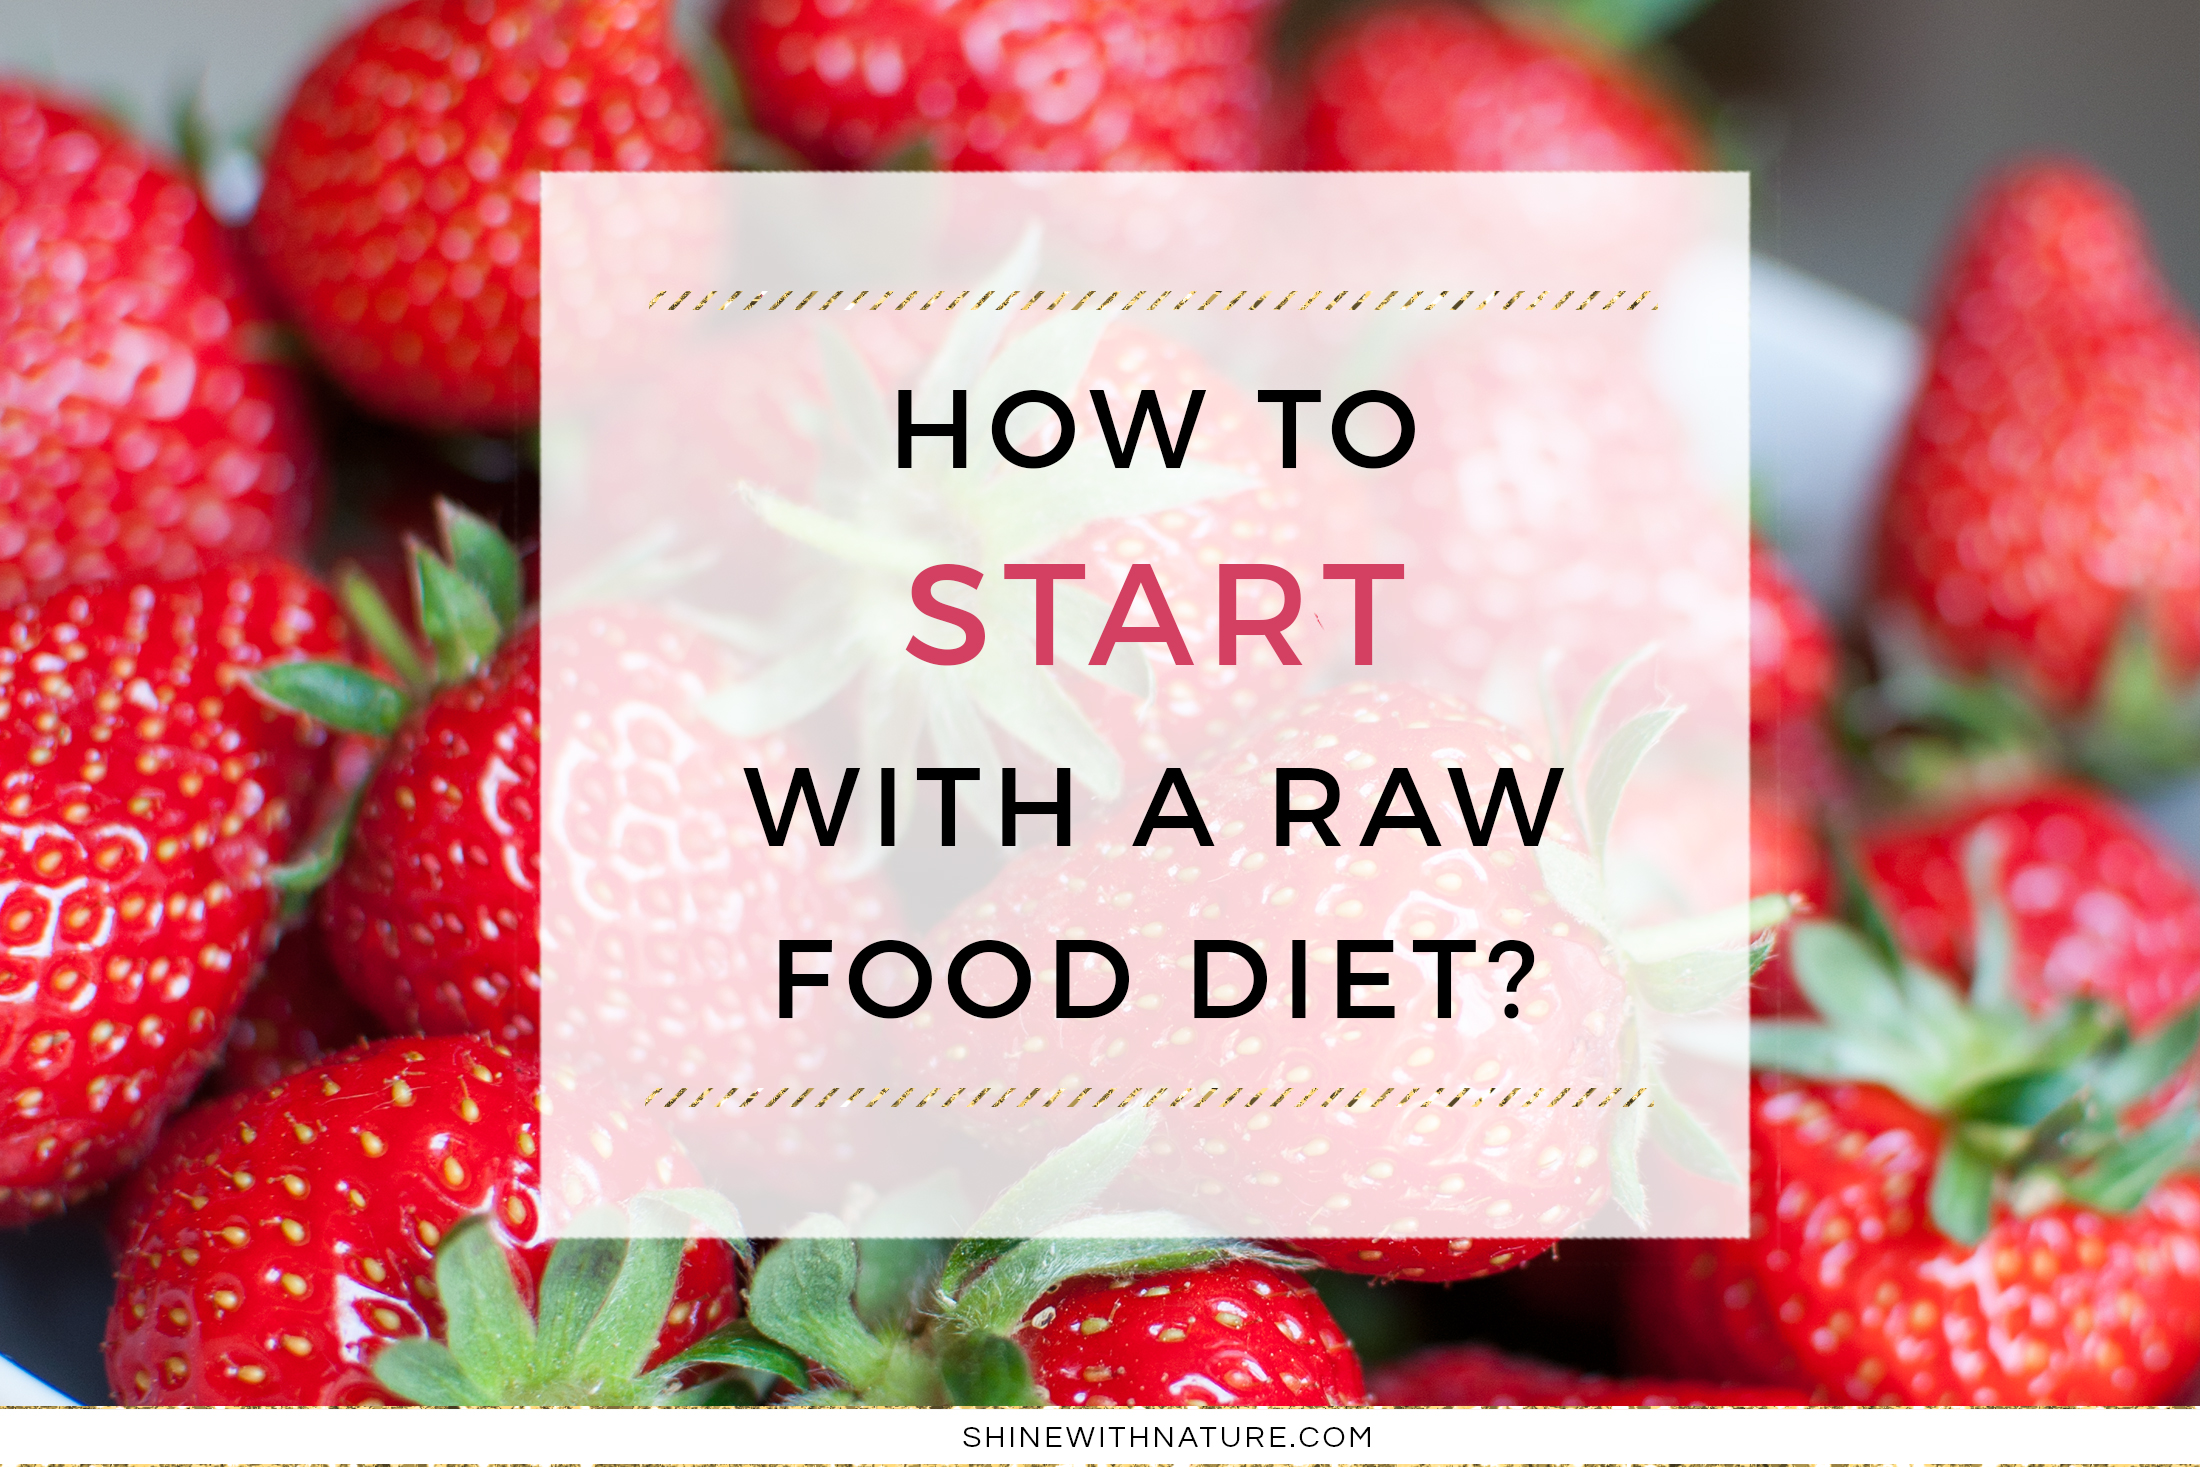 How to Start With a Raw Food Diet? - Shine with Nature